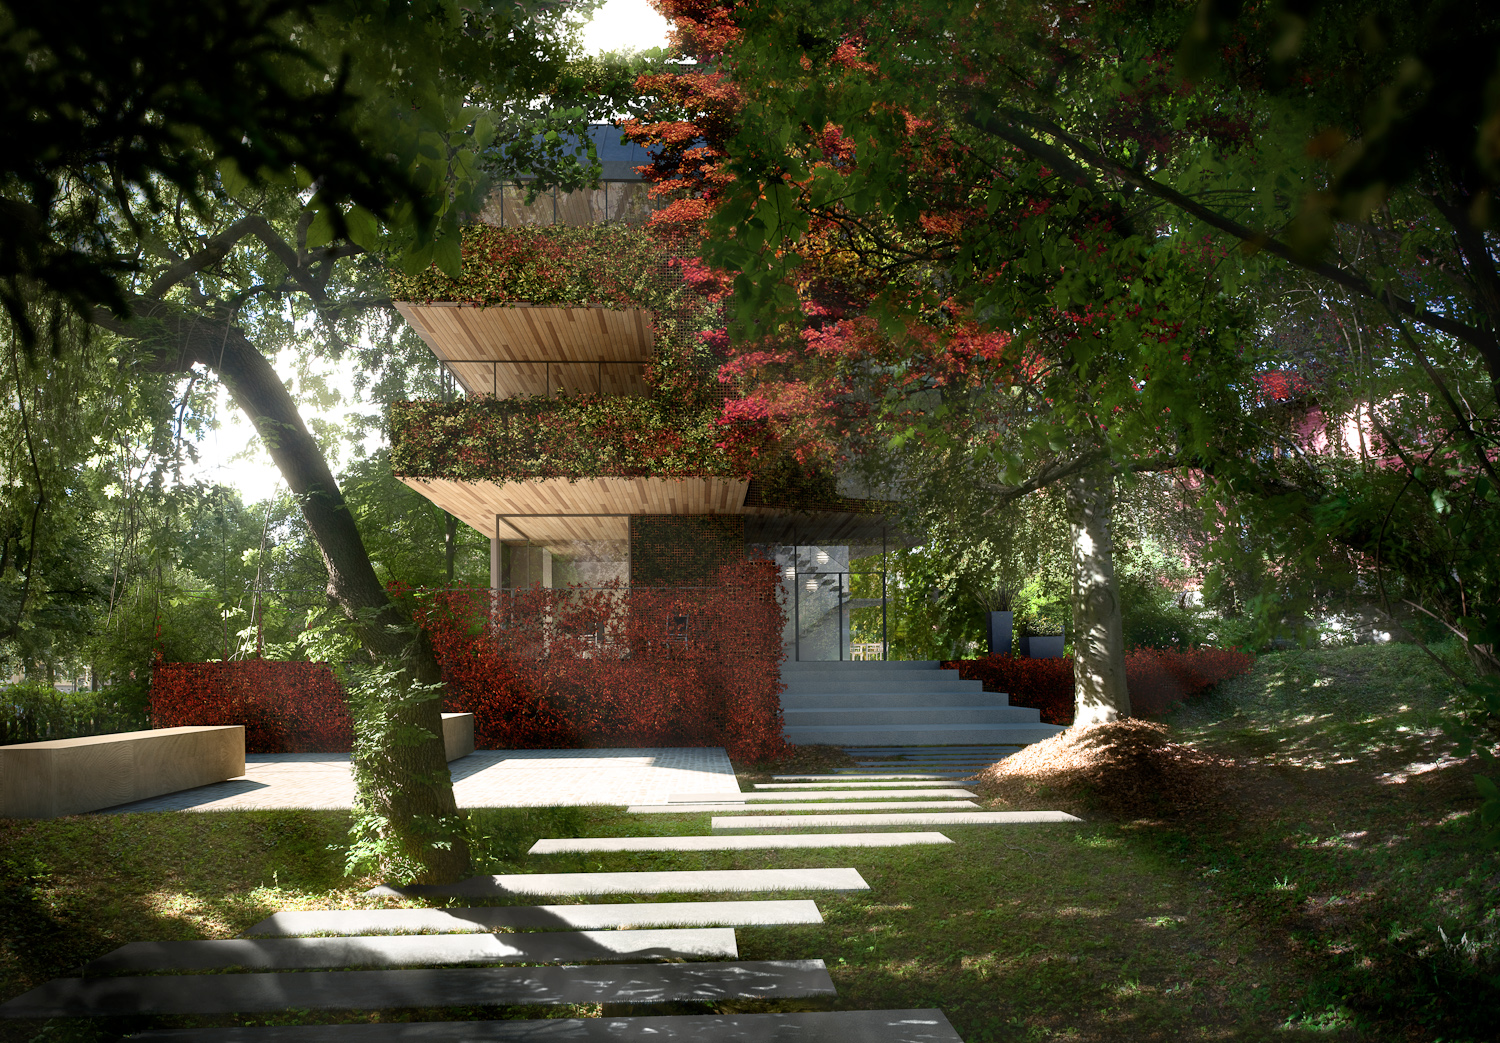 Architectural Visualizations From 2009 Architectural 3D Awards